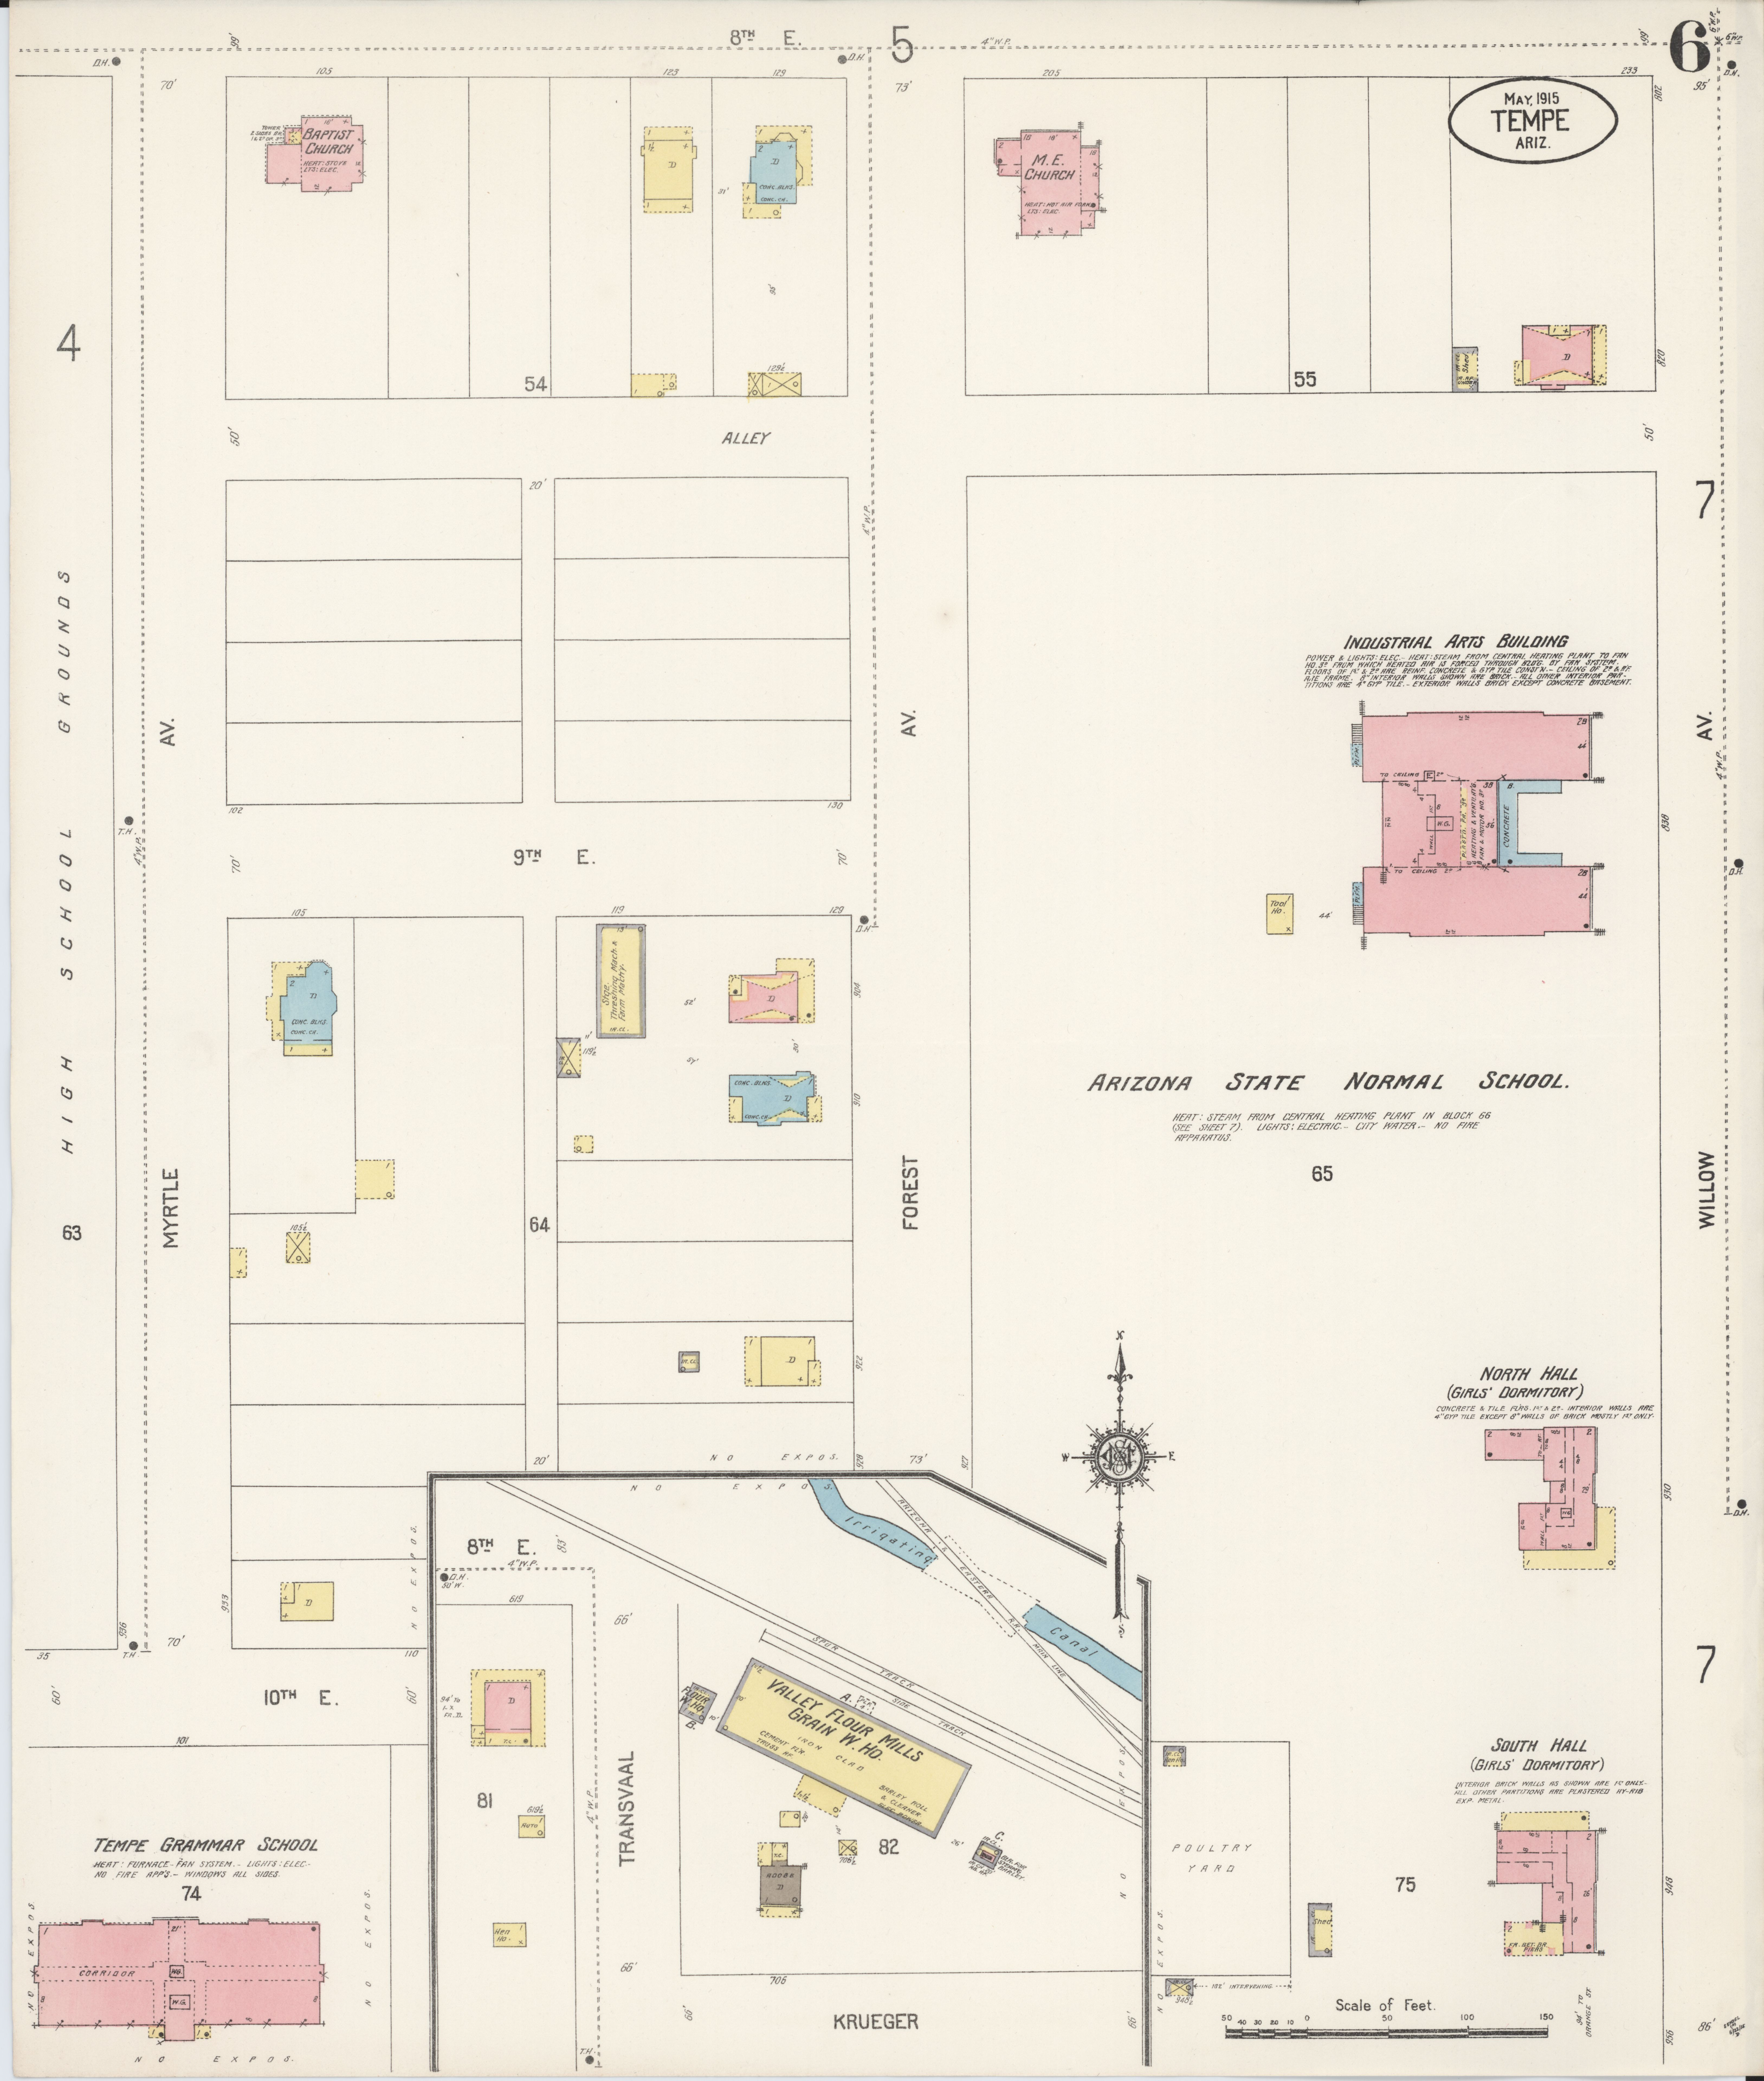 File Sanborn Fire Insurance Map from Tempe Maricopa County Arizona